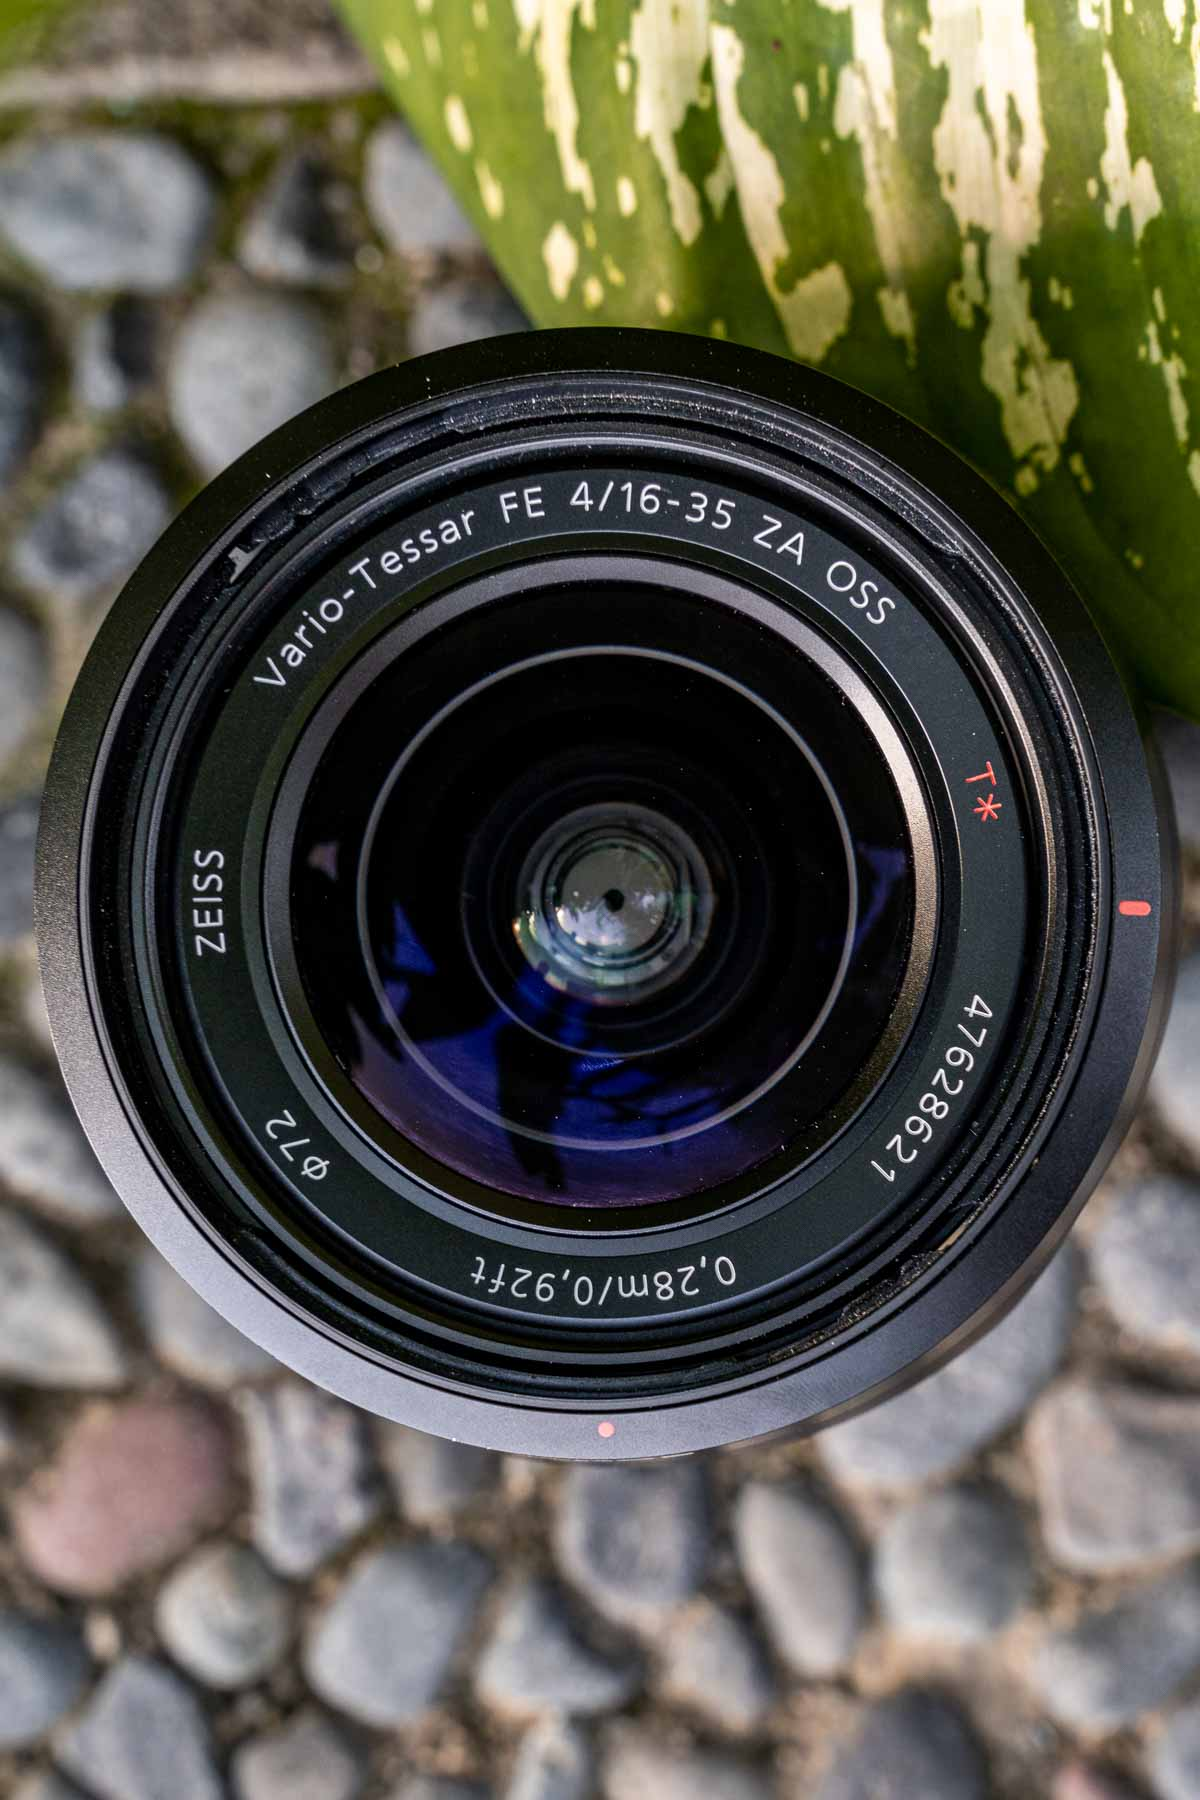 Sony 16-35mm f4 wide angle lens